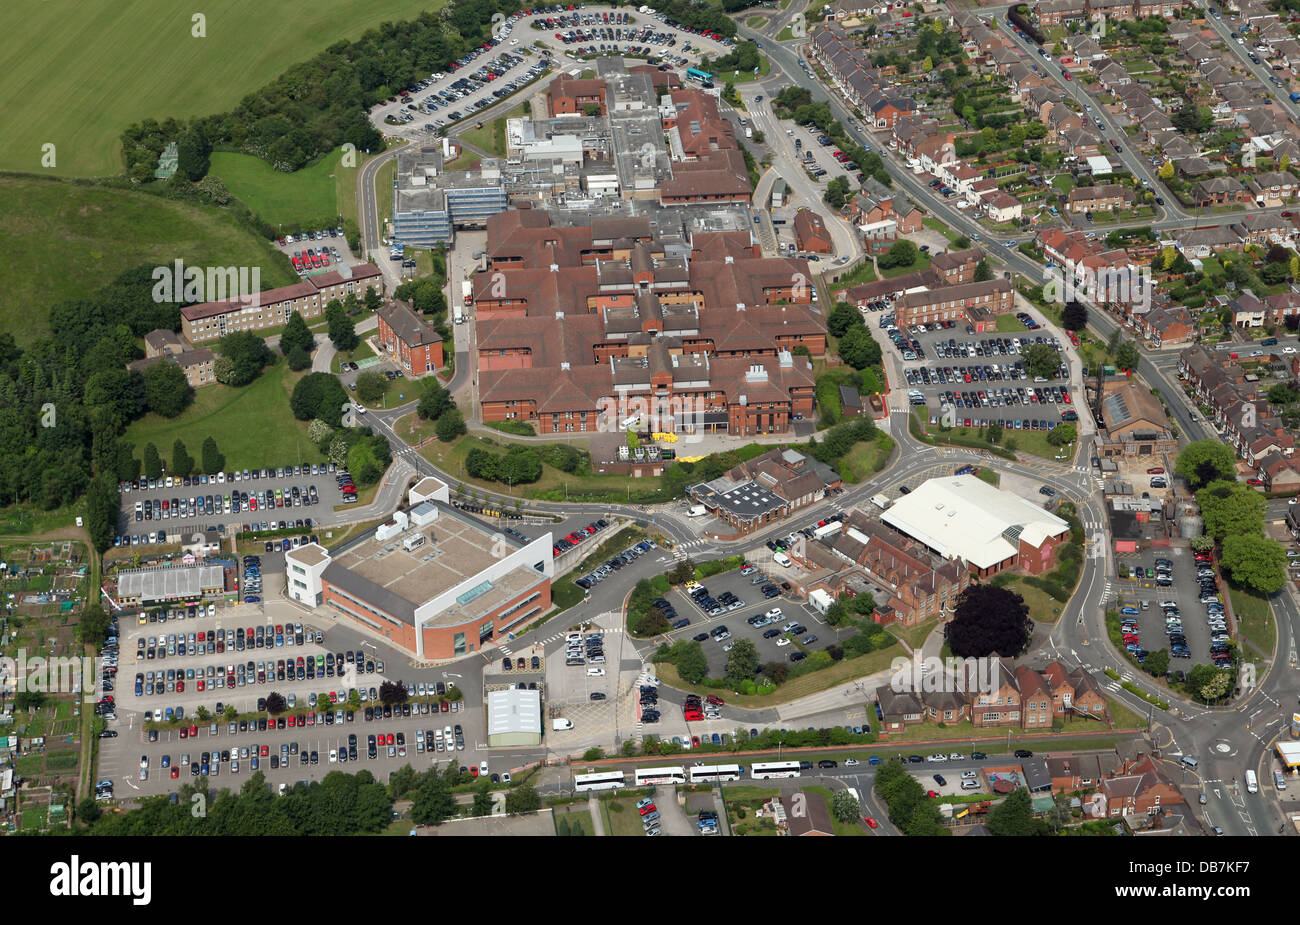 aerial view of Queens Hospital, Burton upon Trent in Staffordshire - Stock Image